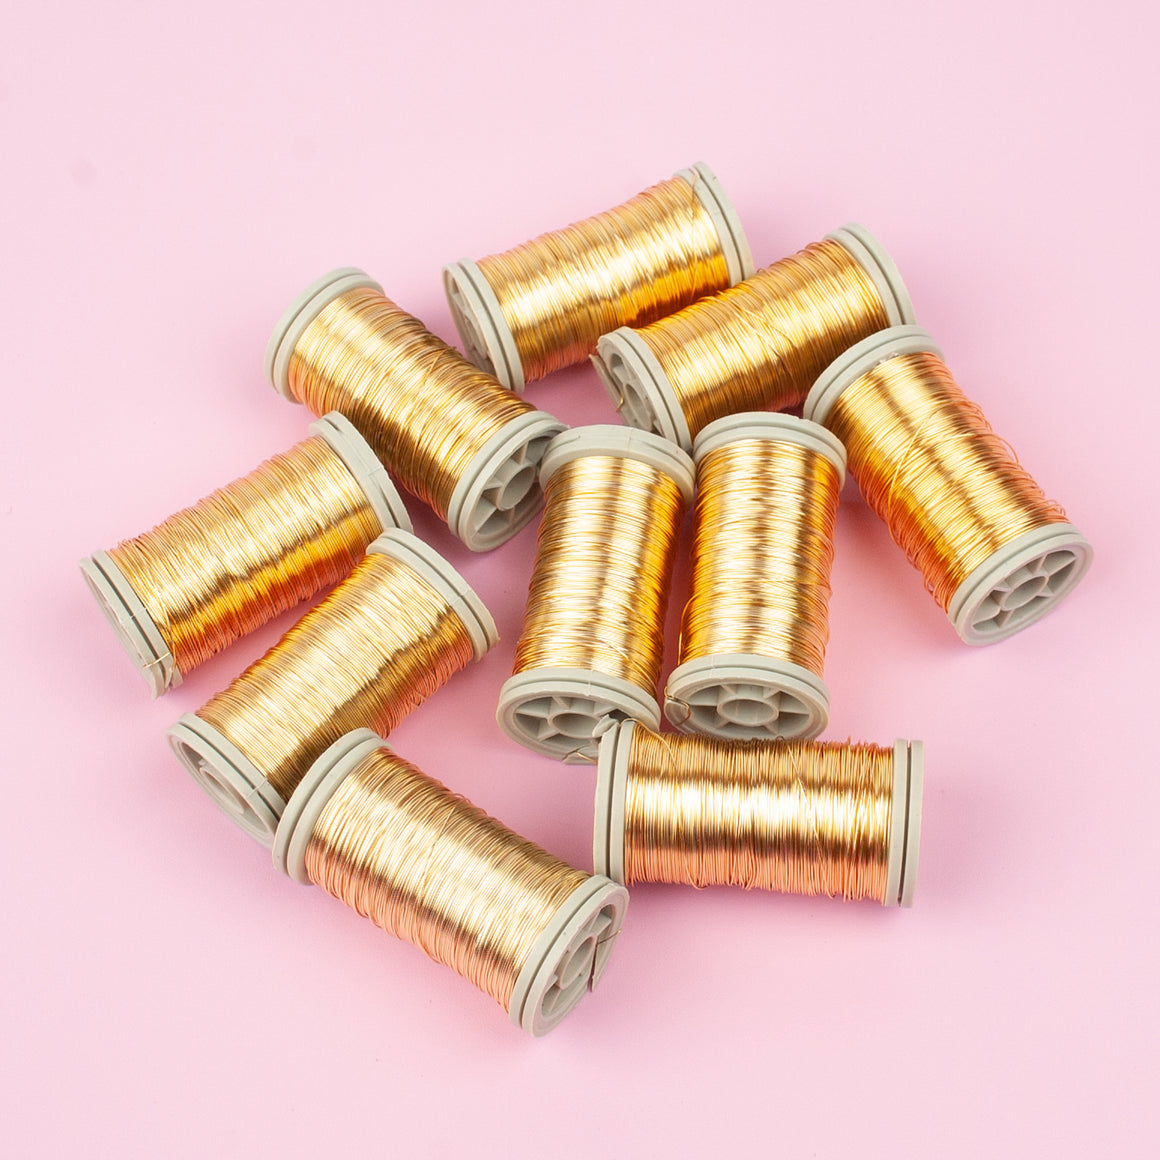 SALE ! 10 spools of 65 feet coated copper wire spools, limited stock ! - Yooladesign